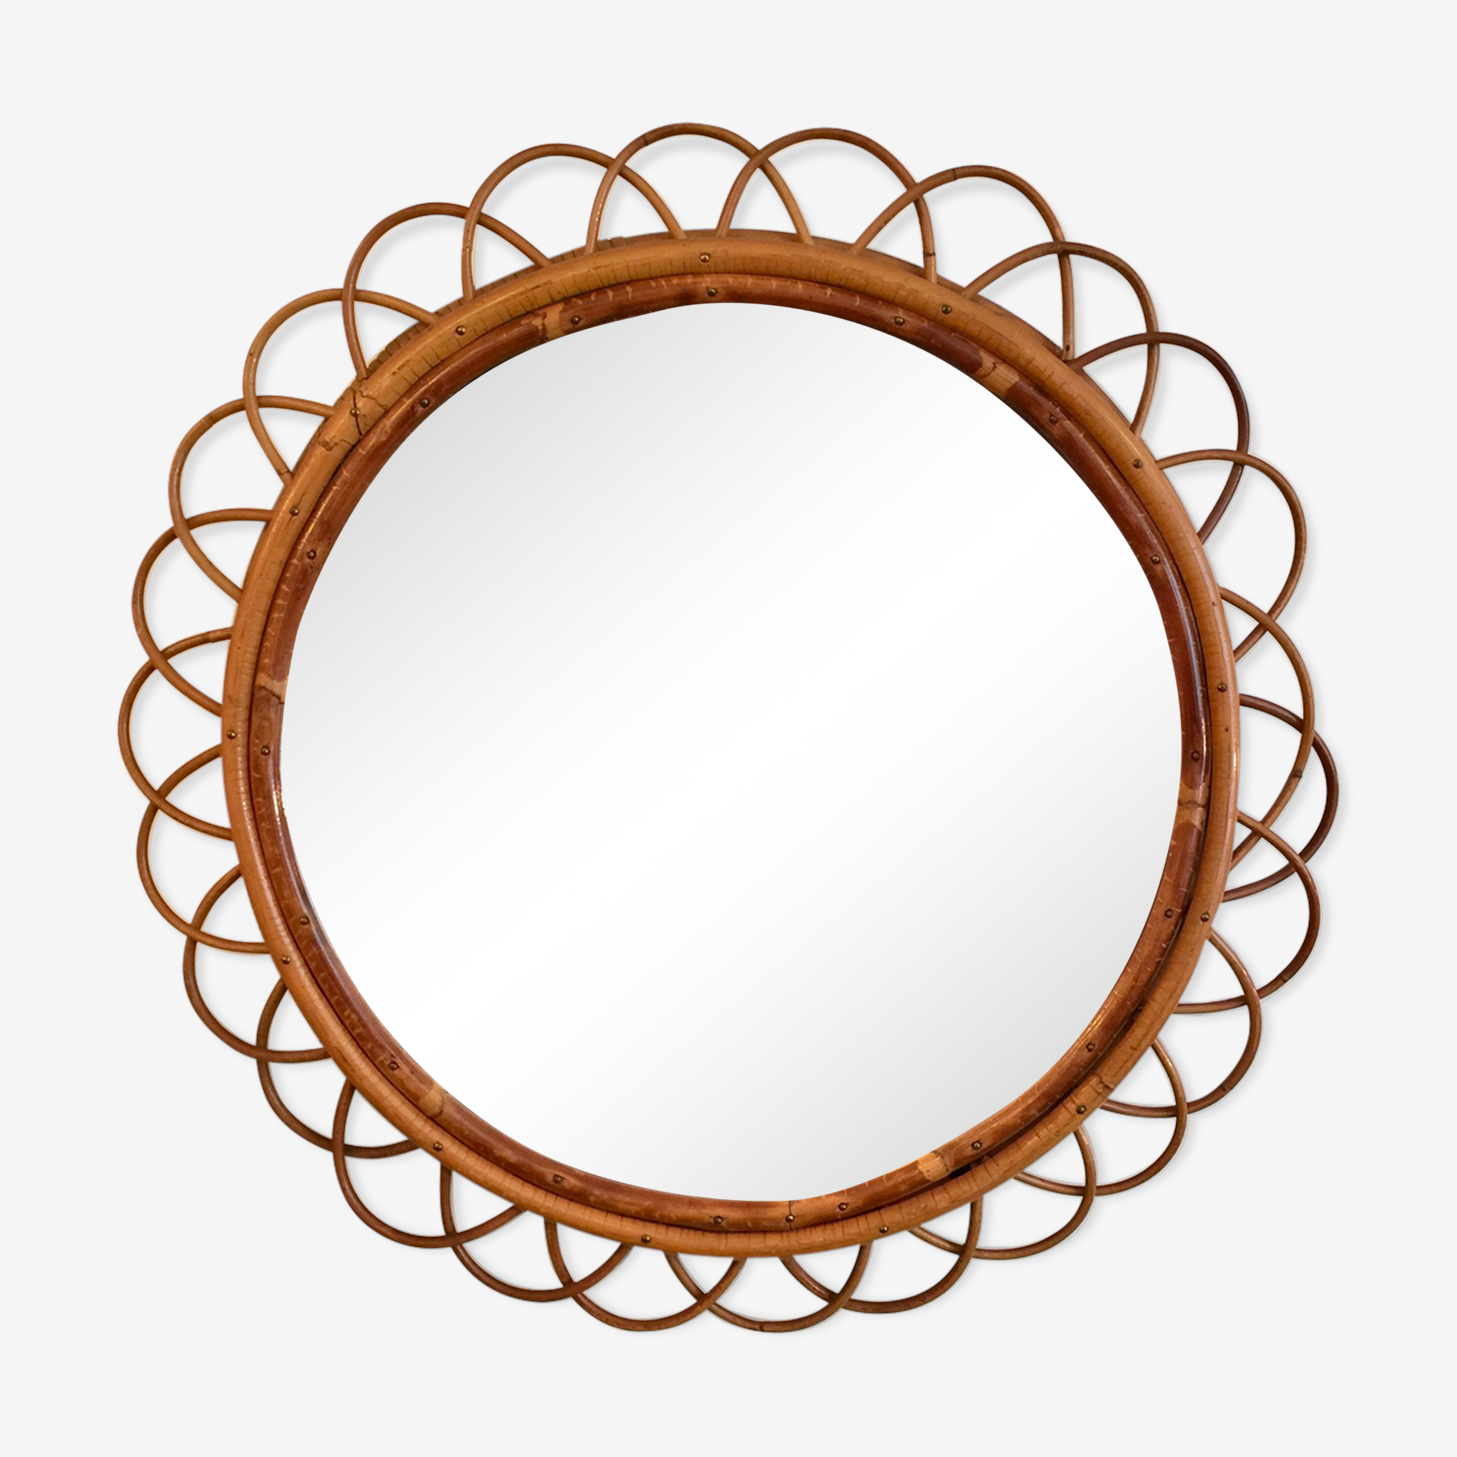 Mirror large rattan format form the 1960s flower 56cm